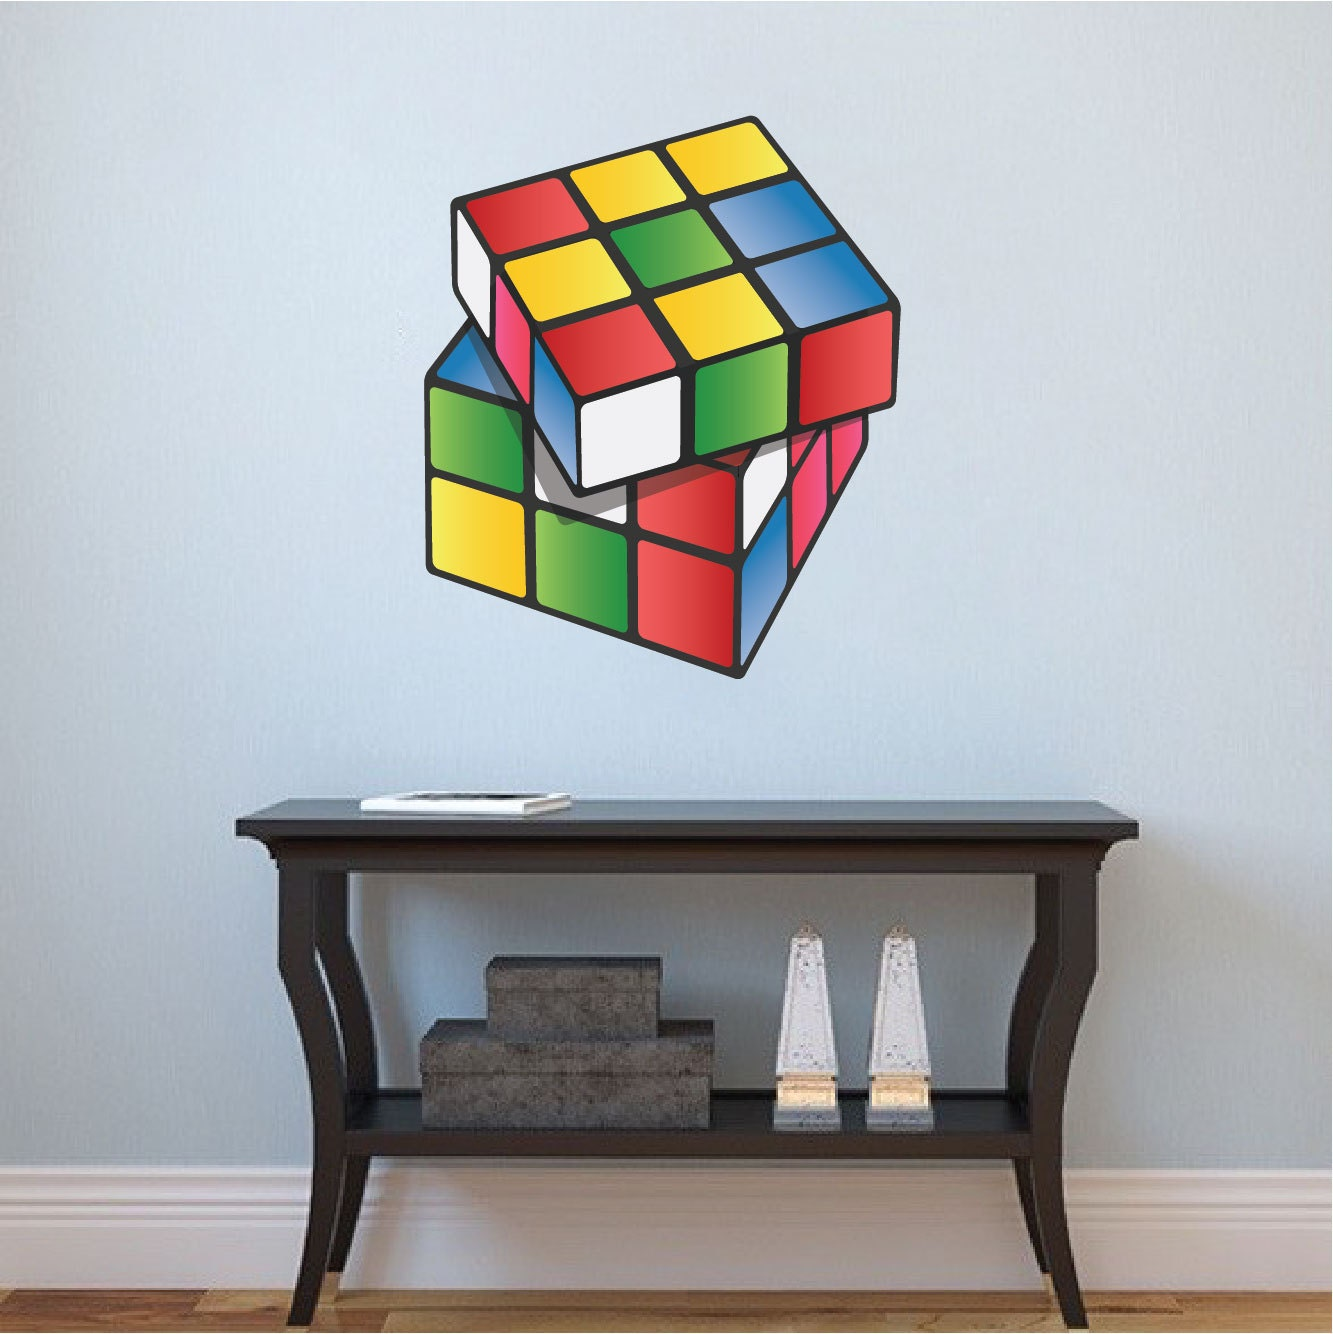 Rubiks cube kids wall decals rubiks cube wall art by primedecal - Cube wall decor ...